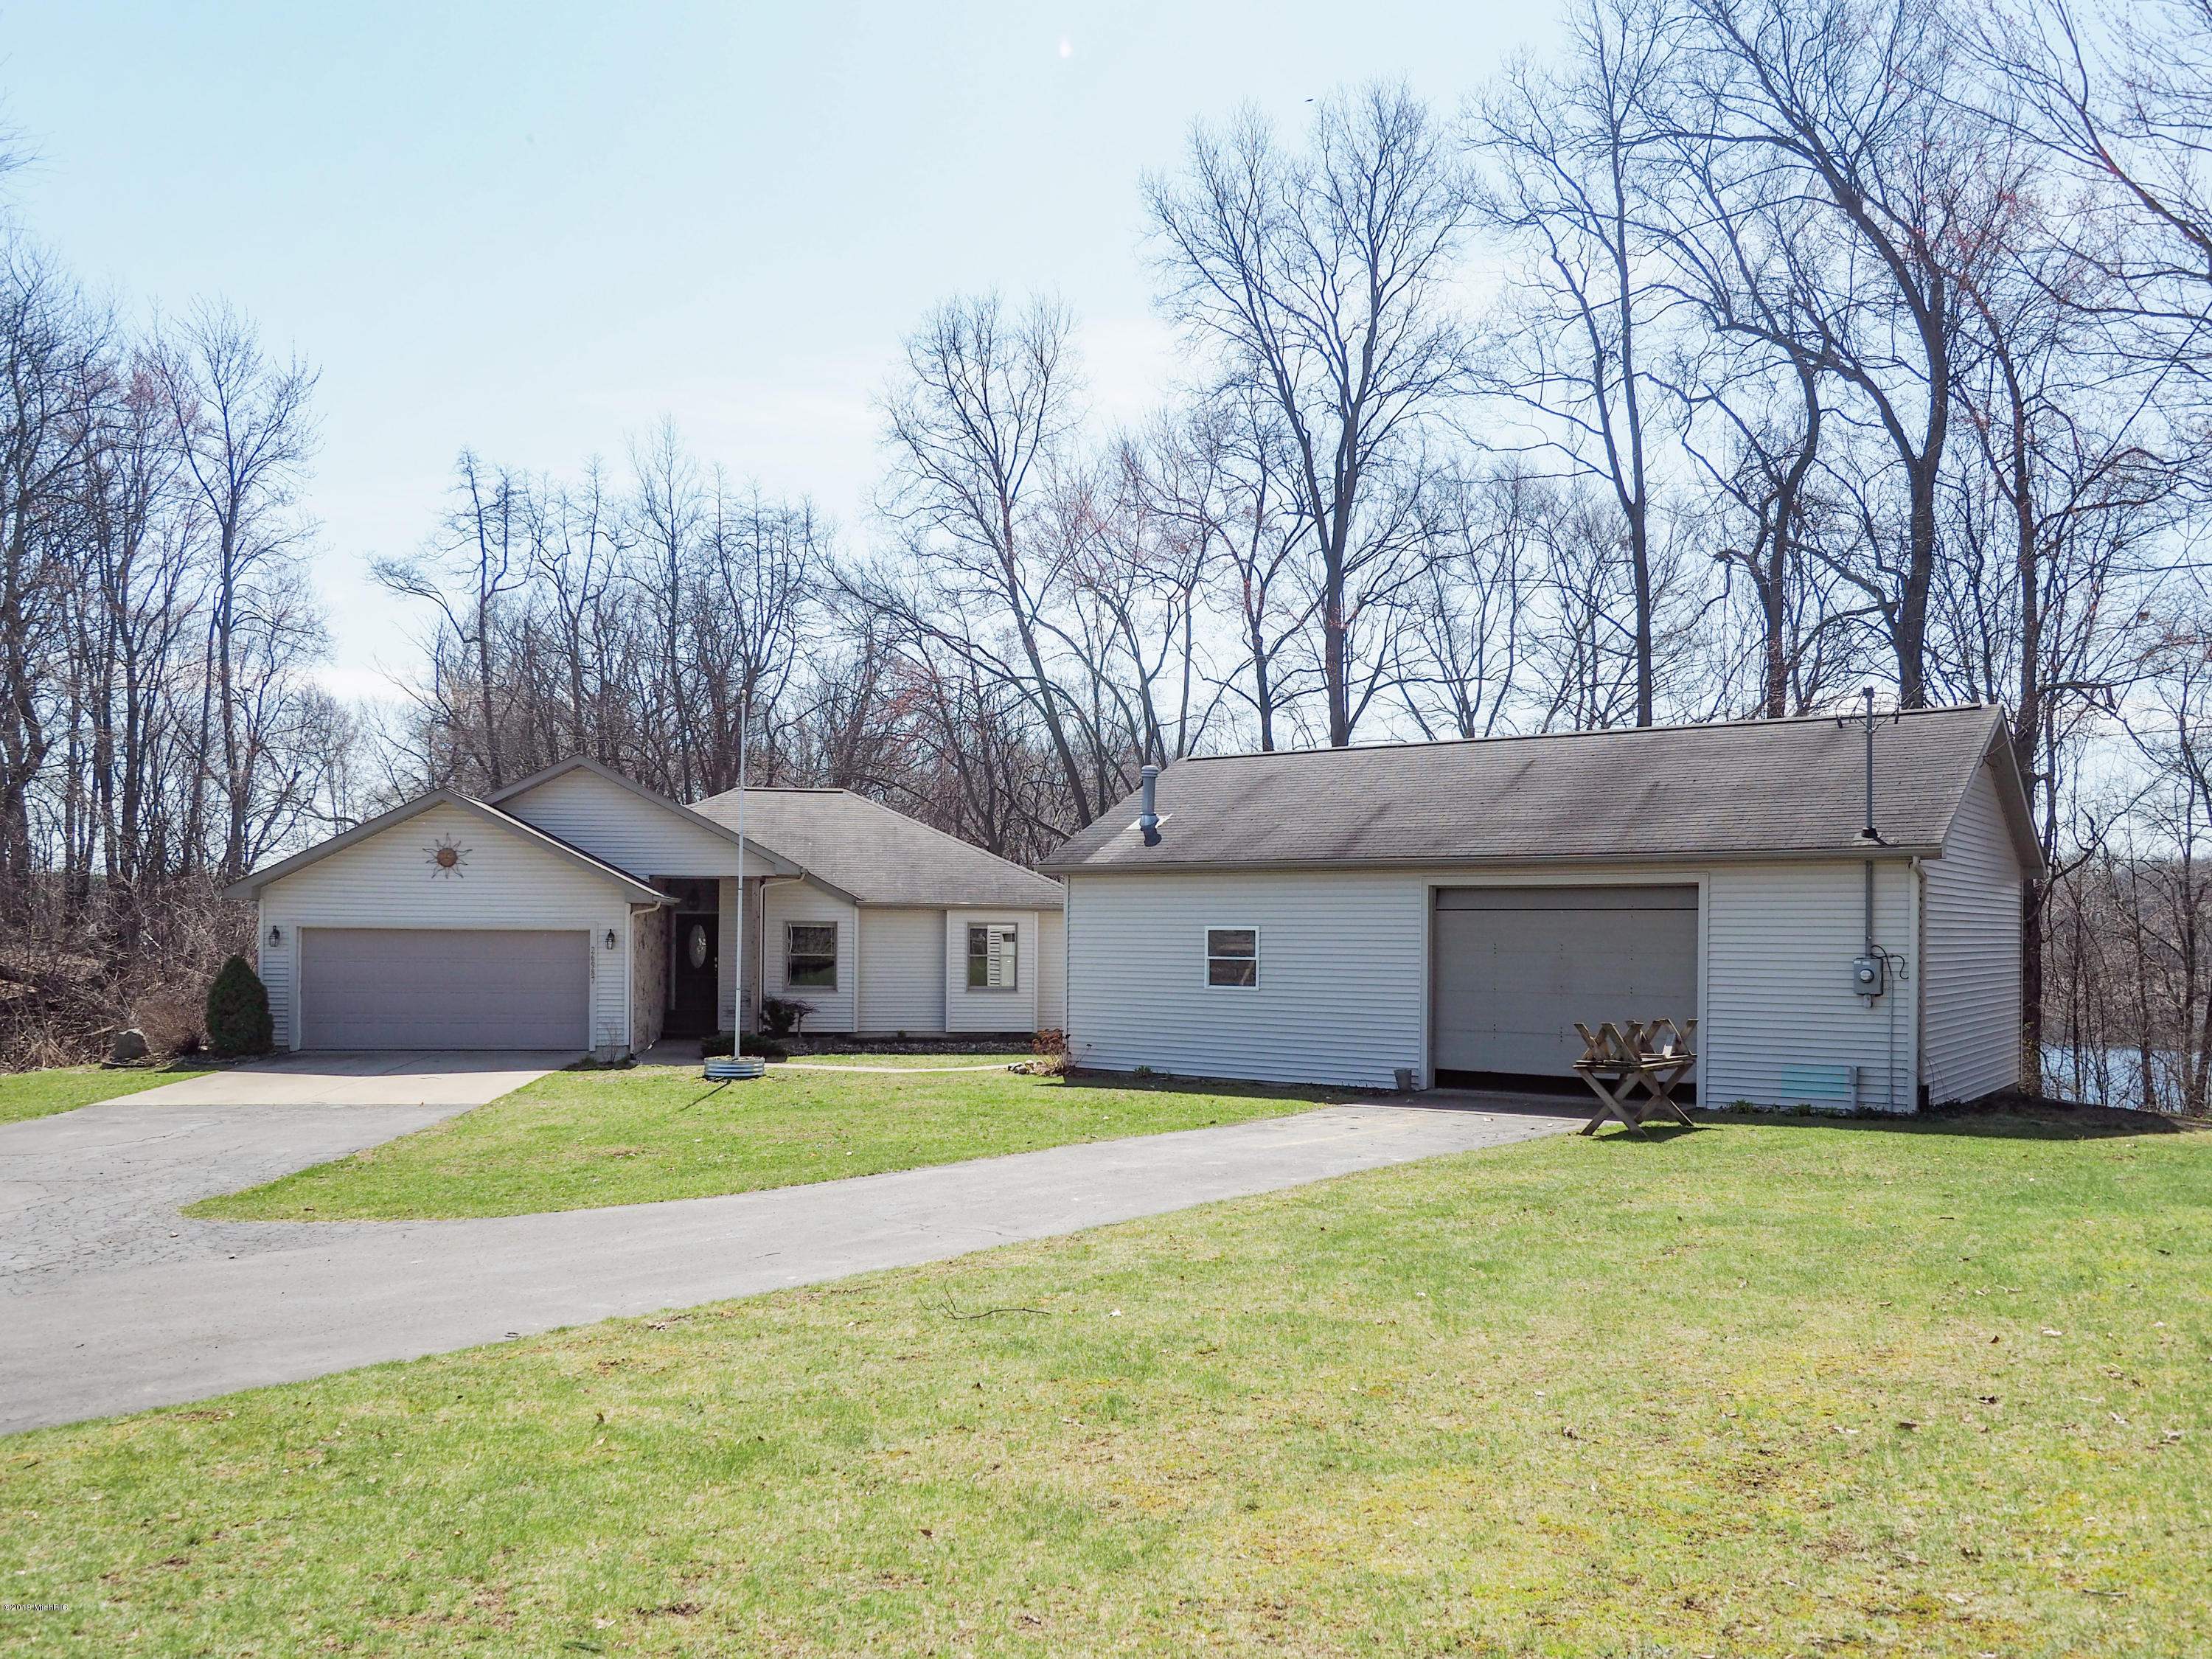 Photo for 26987 Lake Drive, Lawton, MI 49065 (MLS # 19005320)